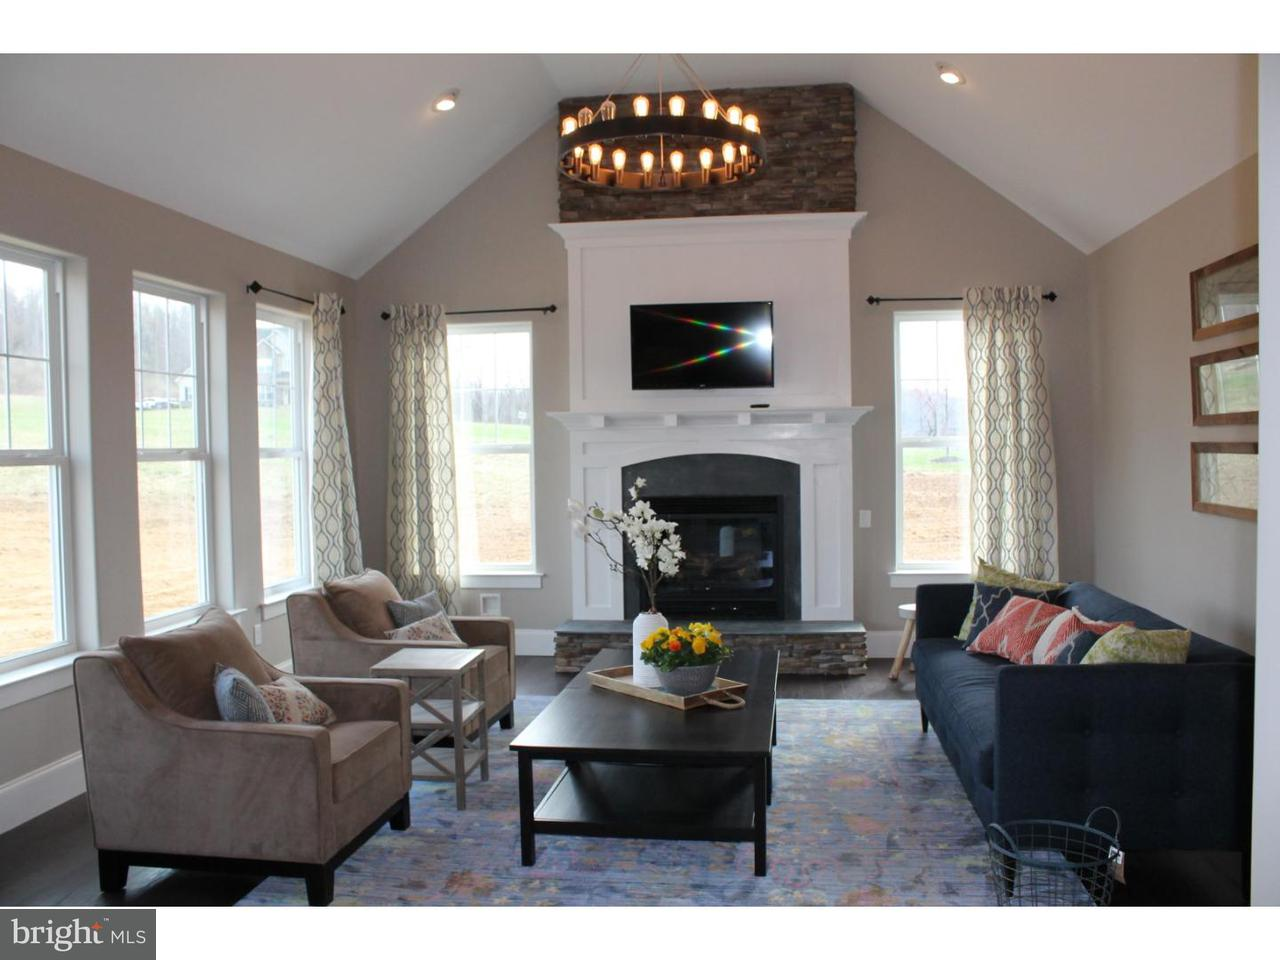 Single Family Home for Sale at SIMMONS Road Perkiomenville, Pennsylvania 18074 United States